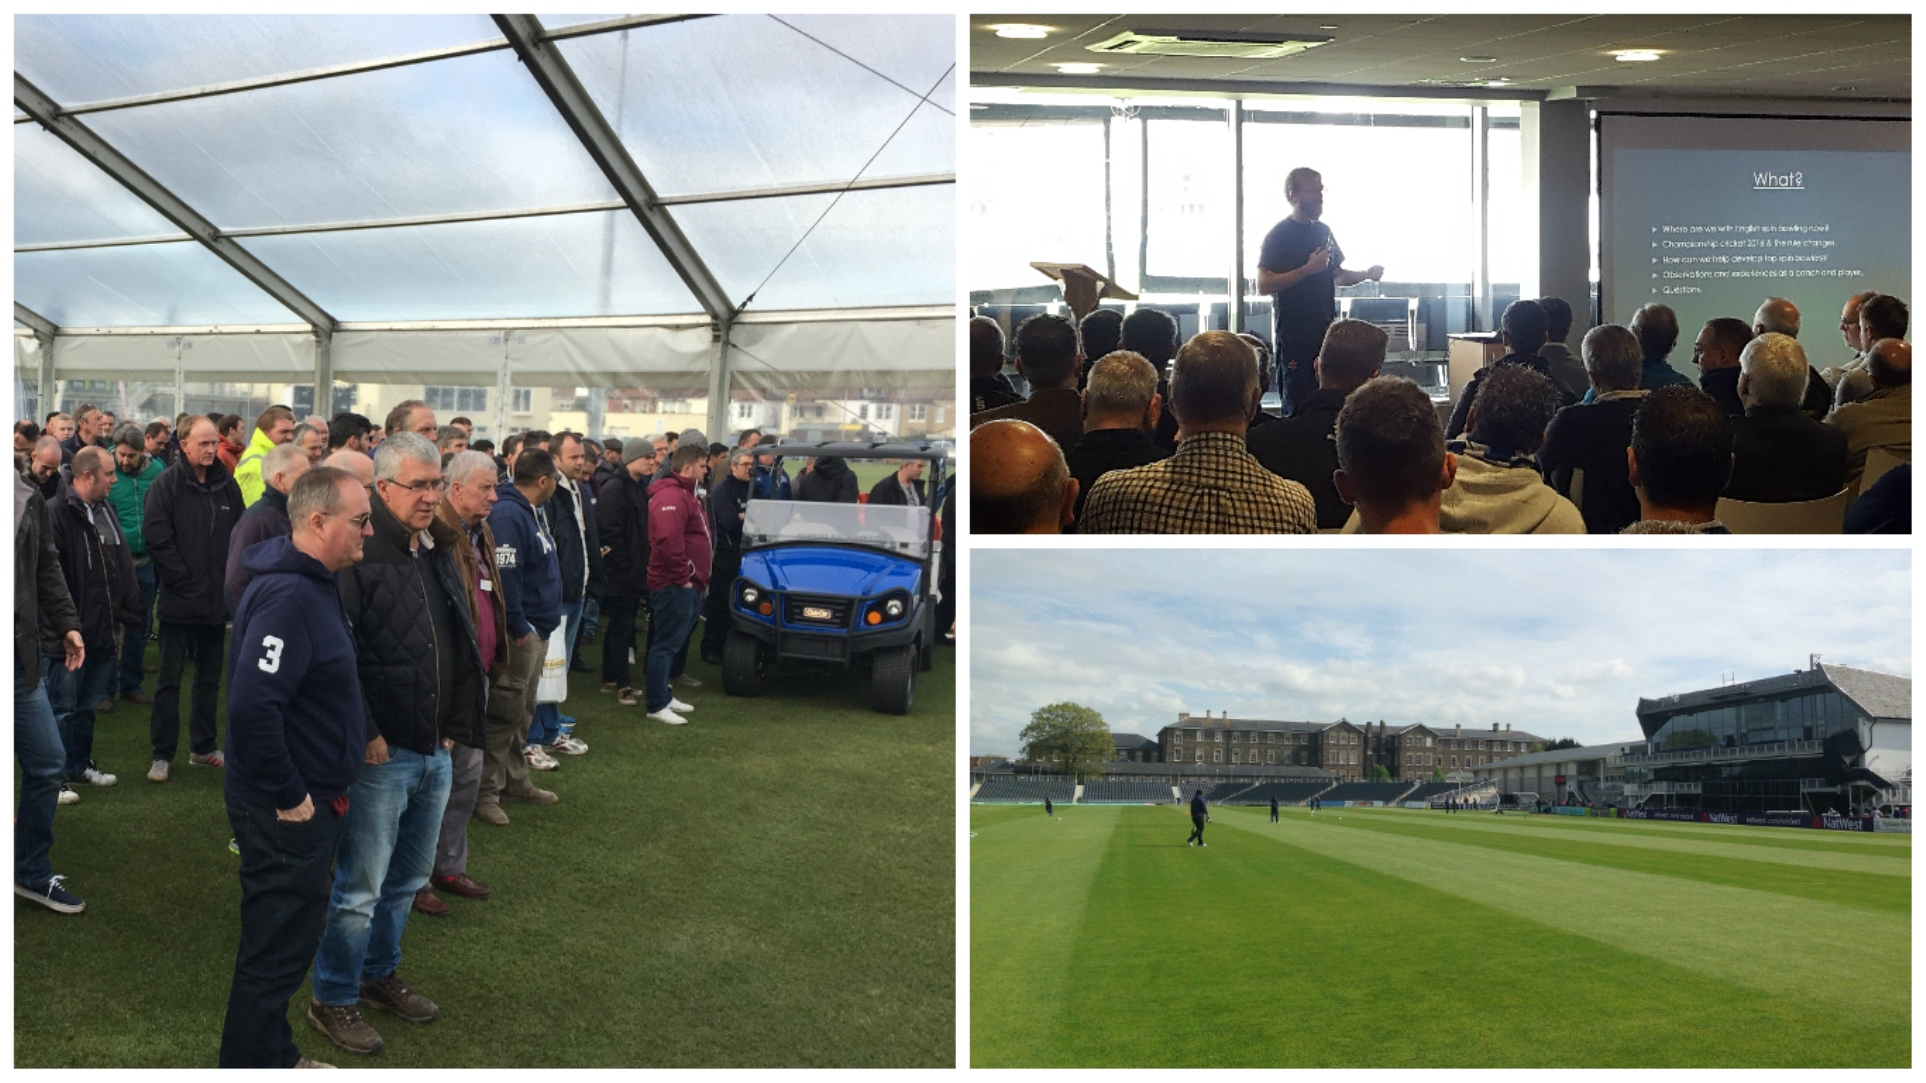 Spinning pitches discussed at Groundsmen's seminar